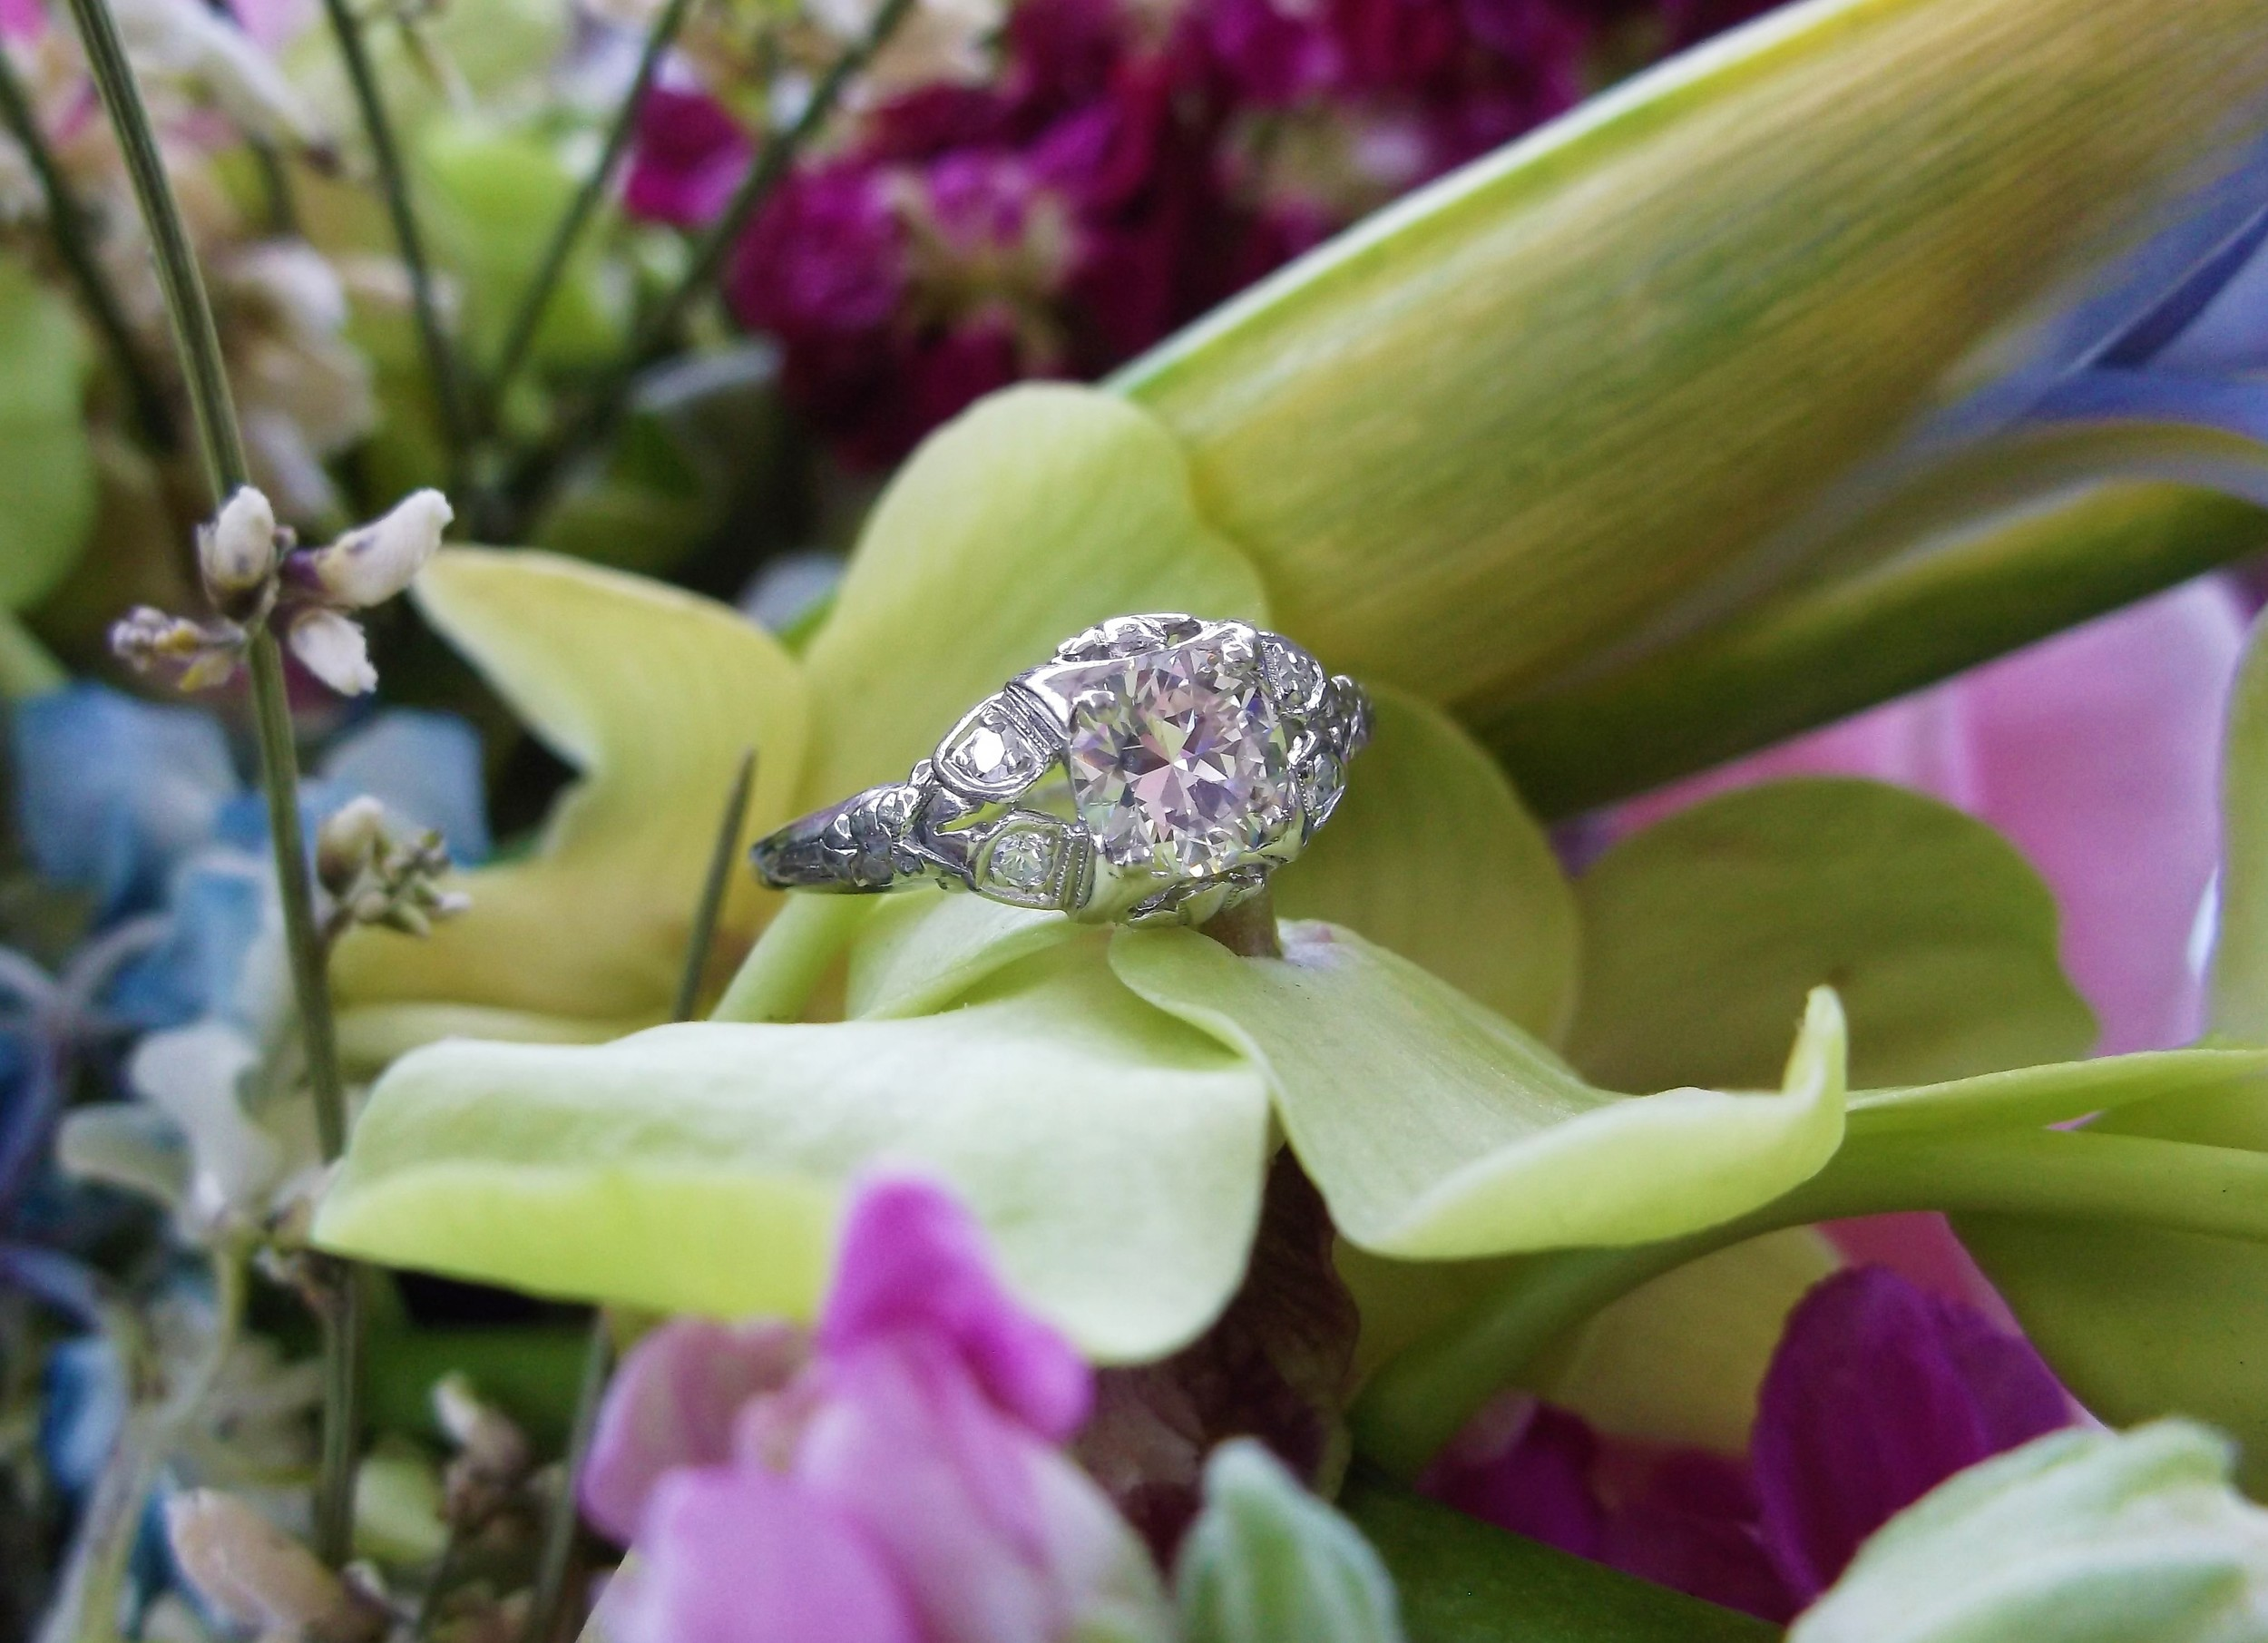 SOLD - Beautiful 1920's 0.68 carat Old European cut diamond set in a lovely platinum and diamond detail mounting.